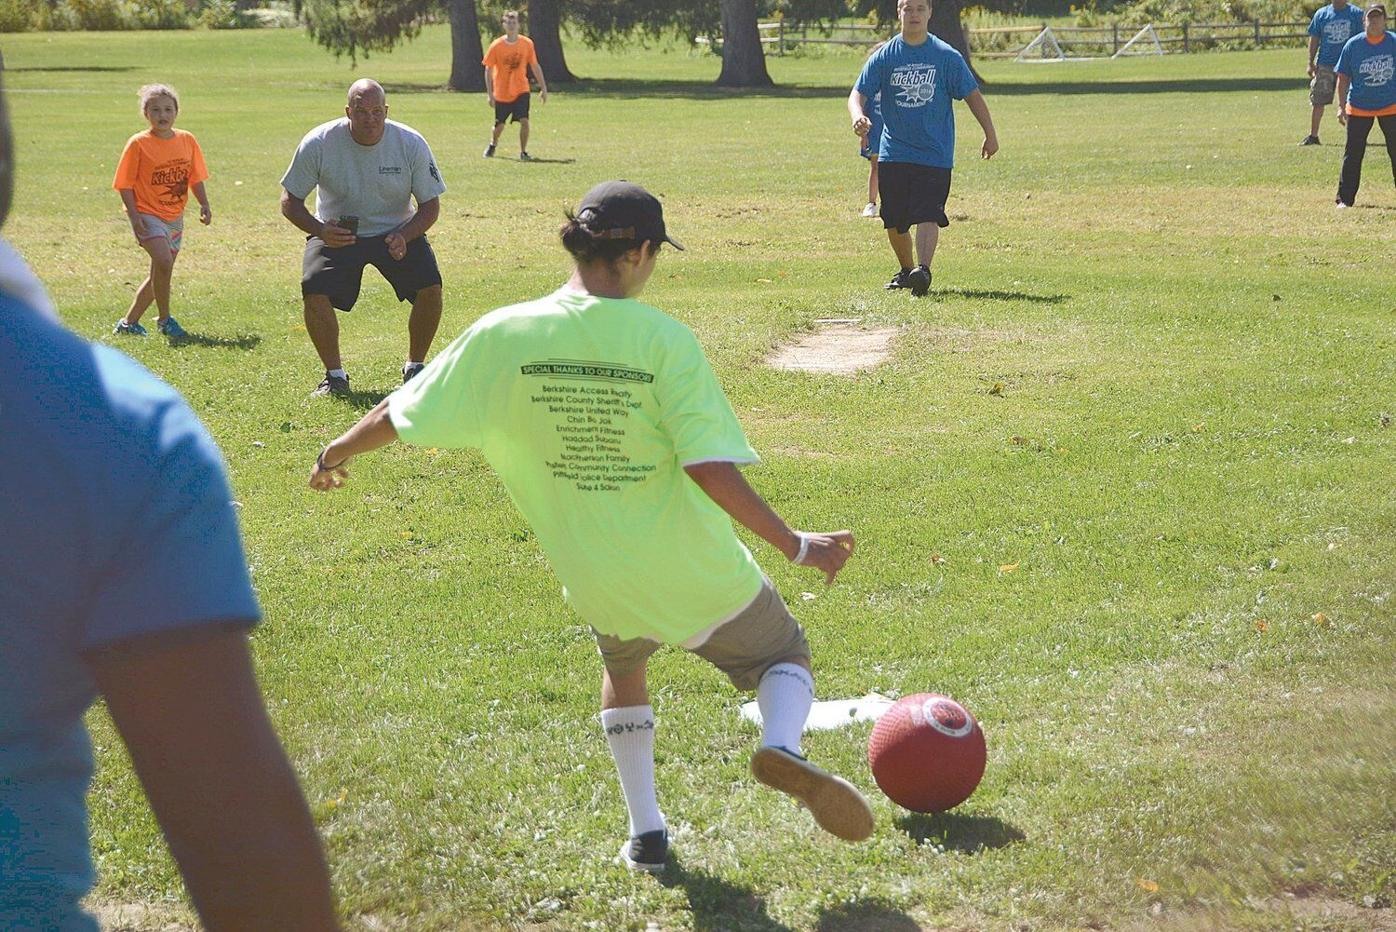 Jake Mendel | On Track: Some summer suggestions for pickup sports in Berkshire County